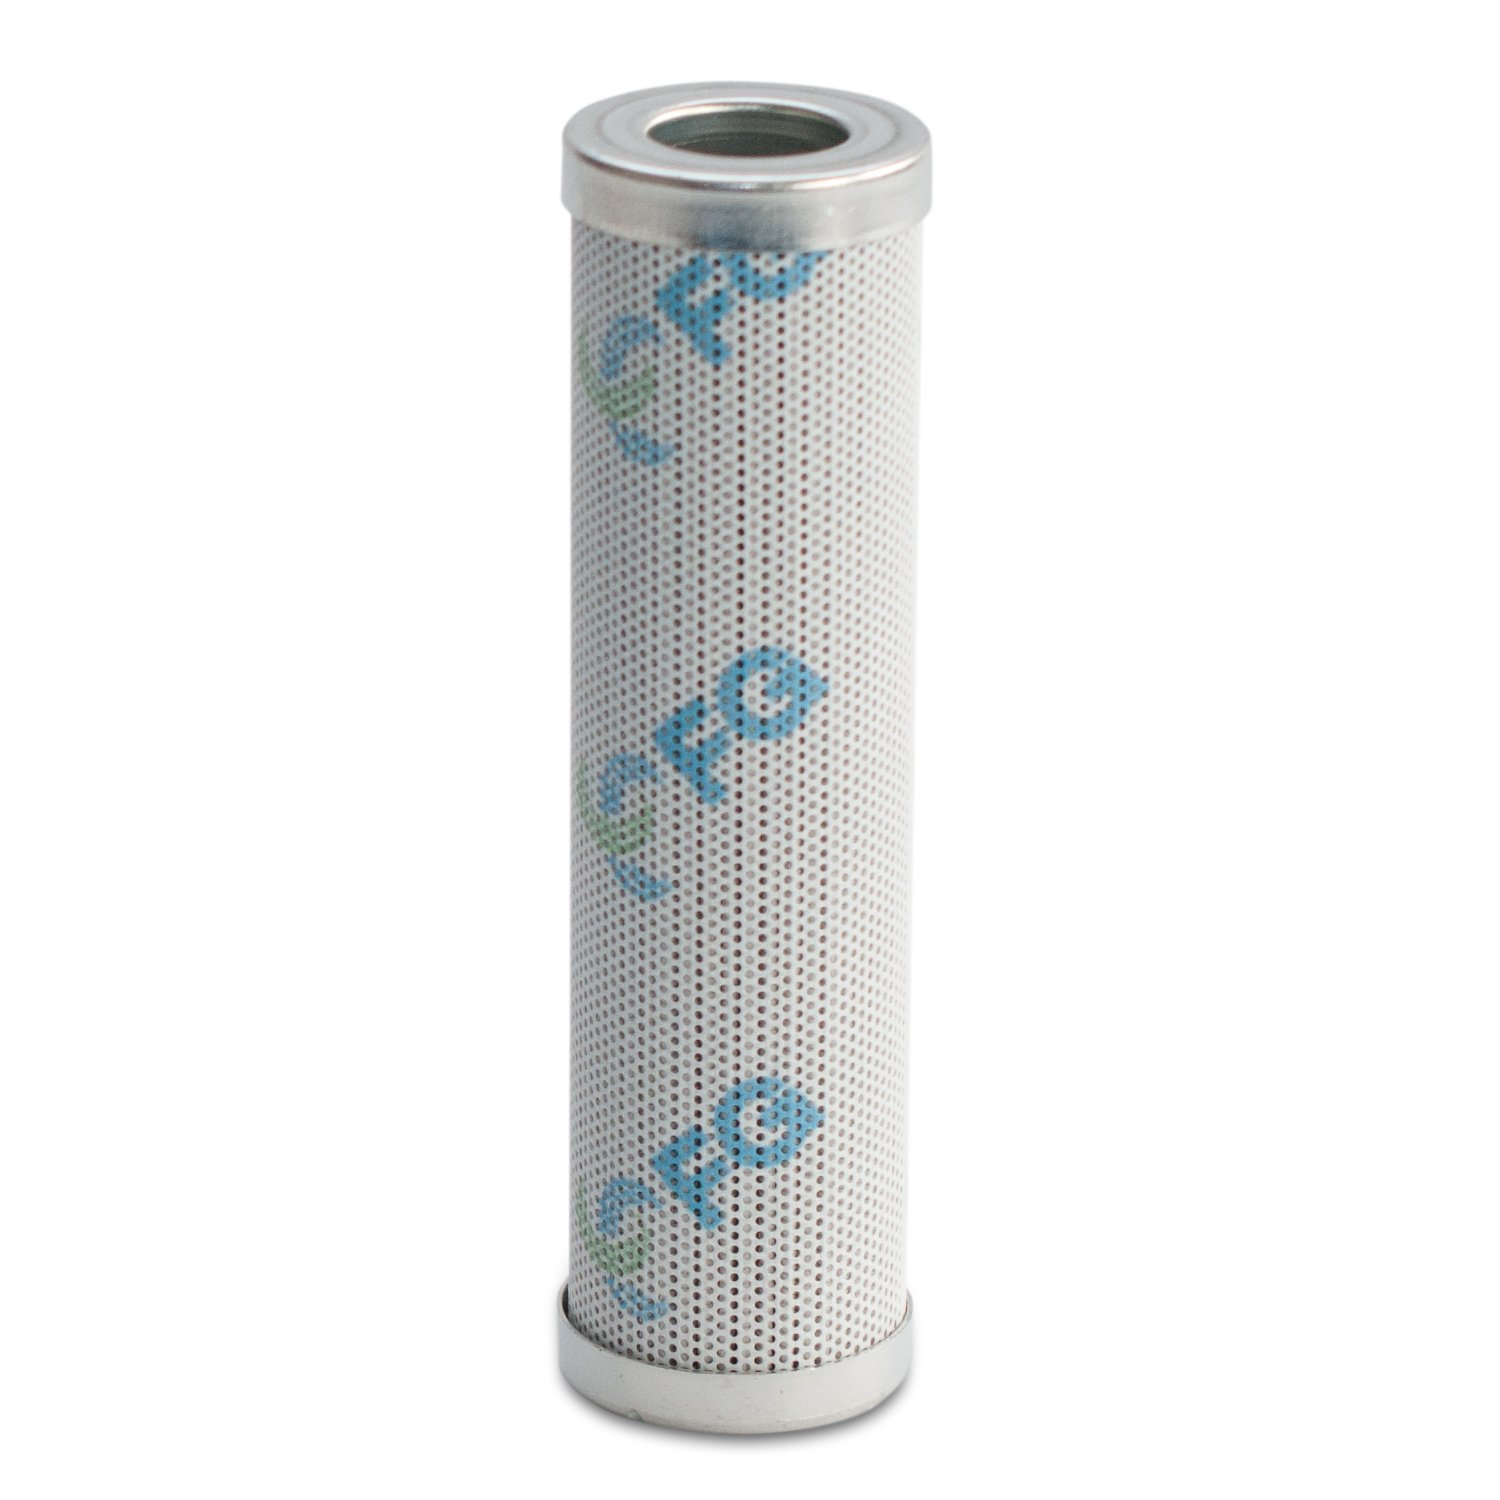 Filtration Group, PI-4108 25 Micron Fiberglass In-Line Filter Element by Filtration Group